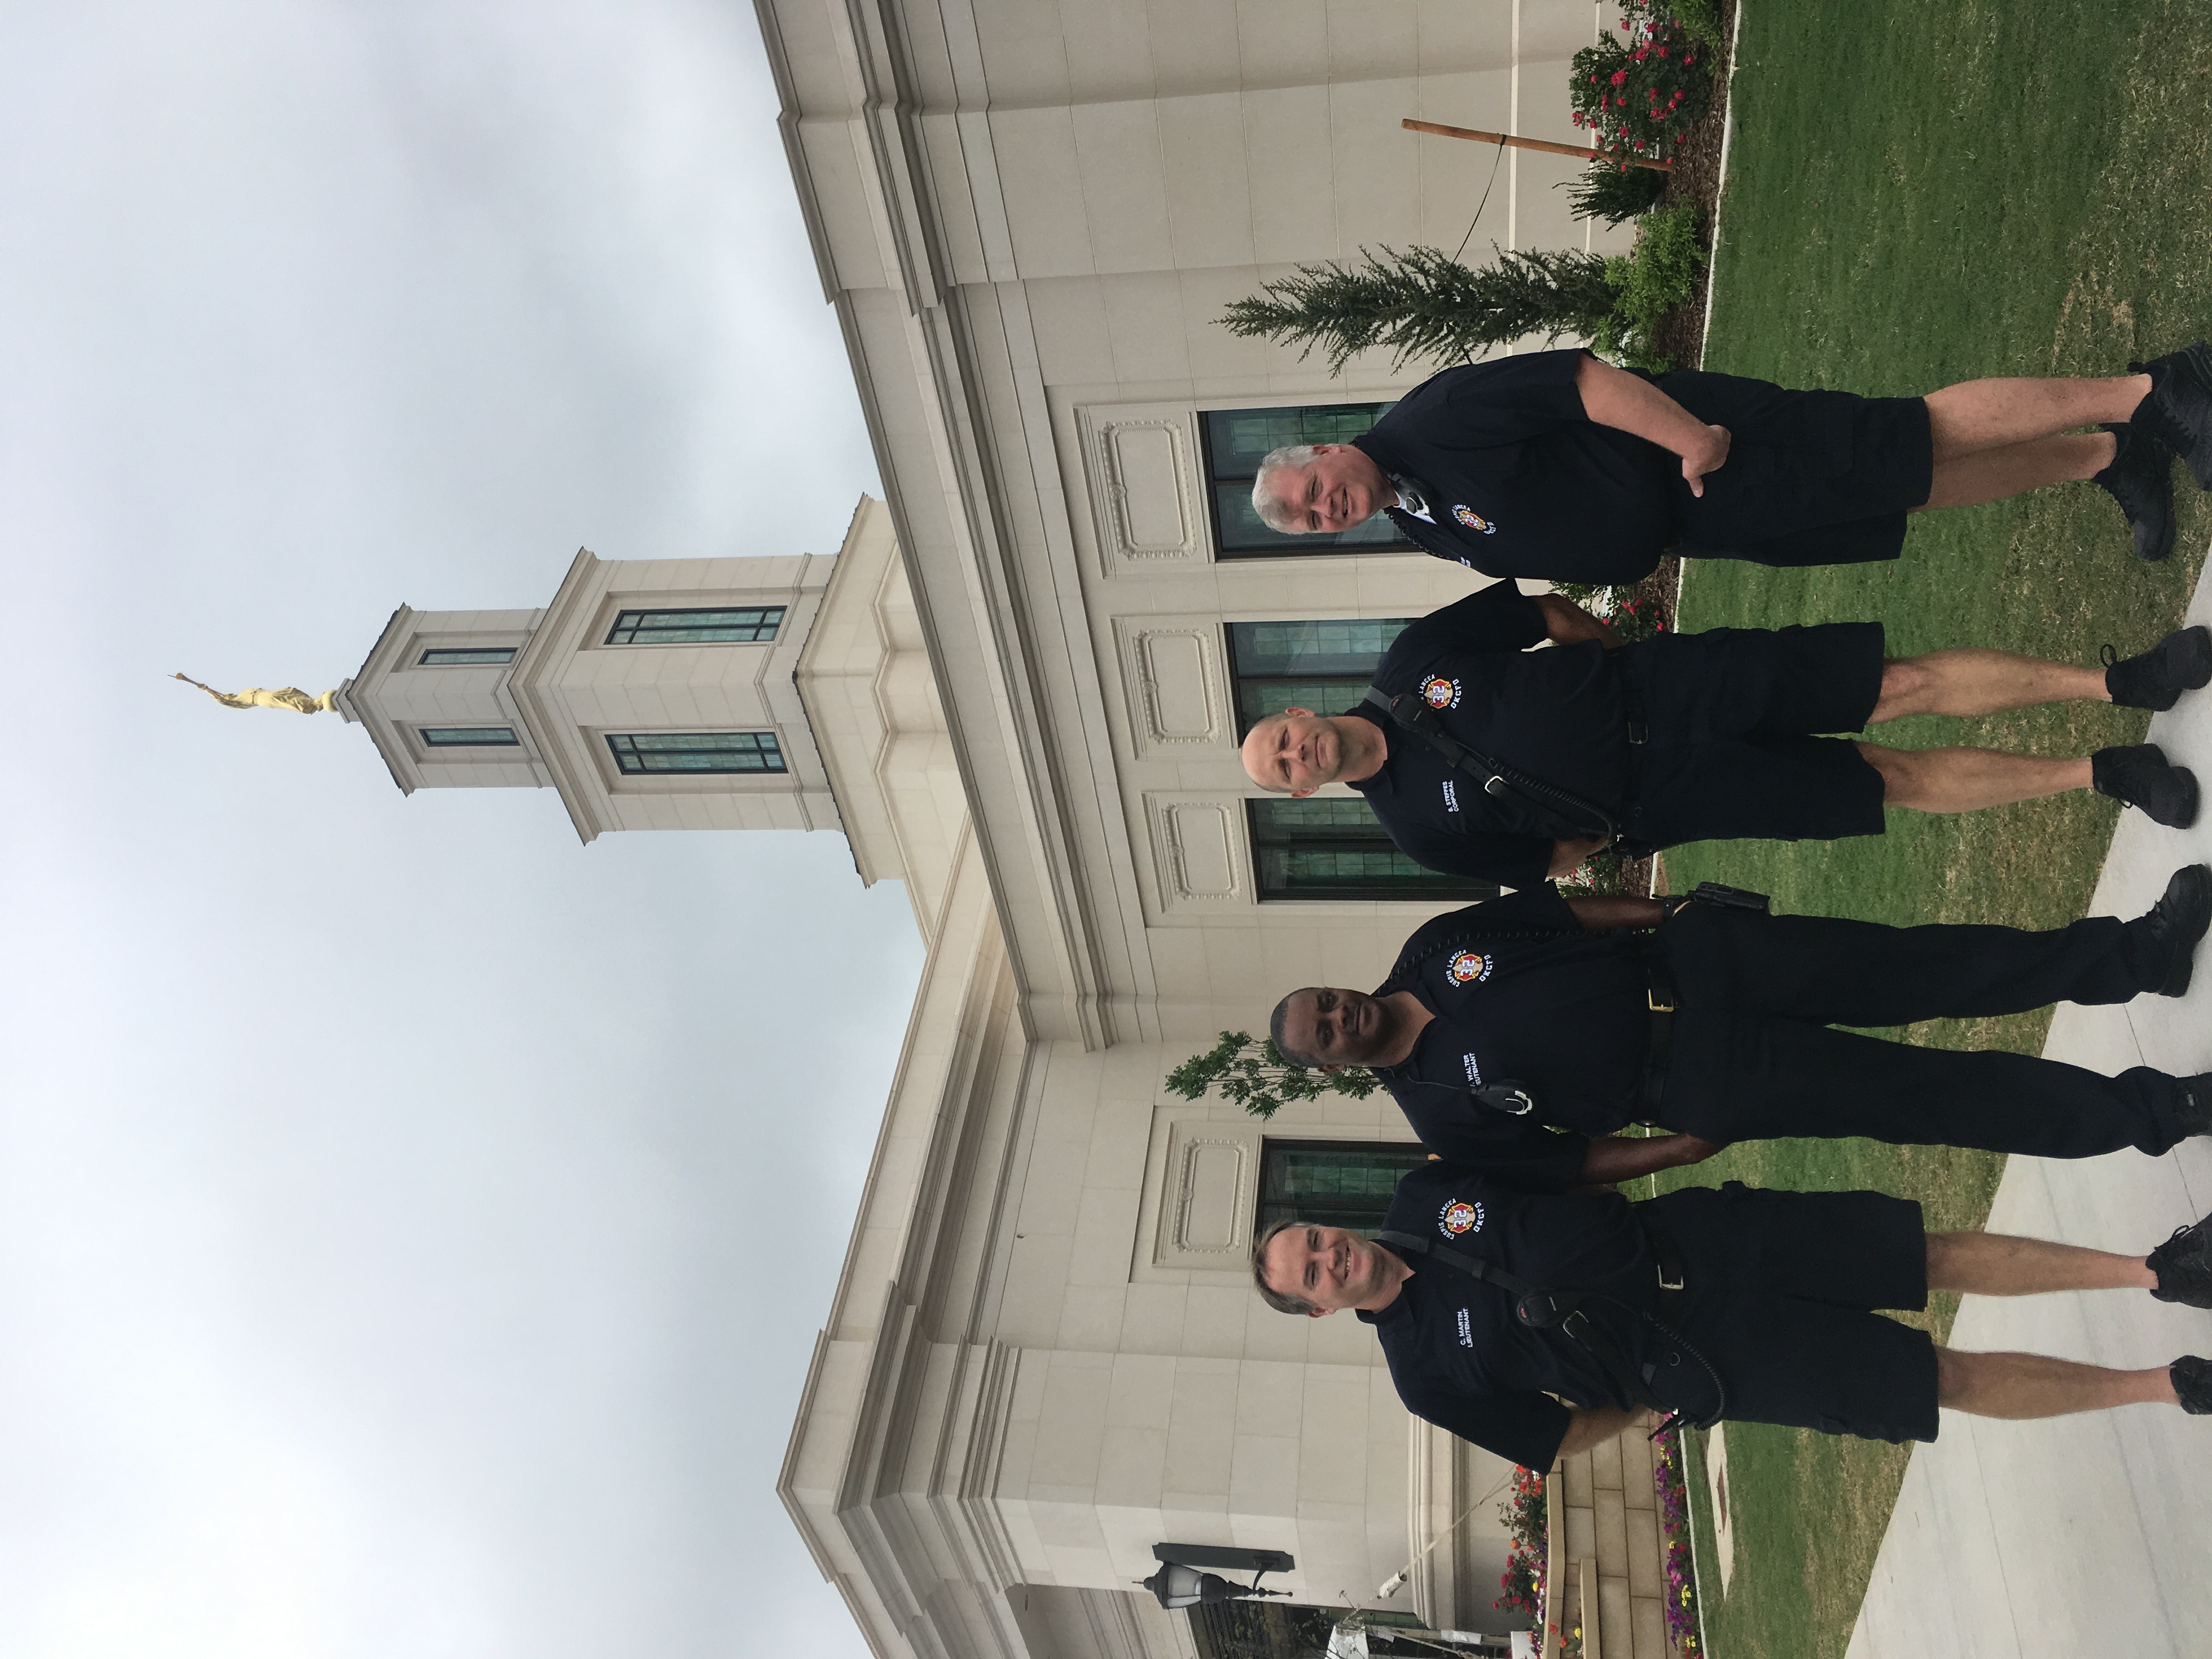 First responders from the Oklahoma City area visited during the open house of the Oklahoma City Oklahoma Temple.